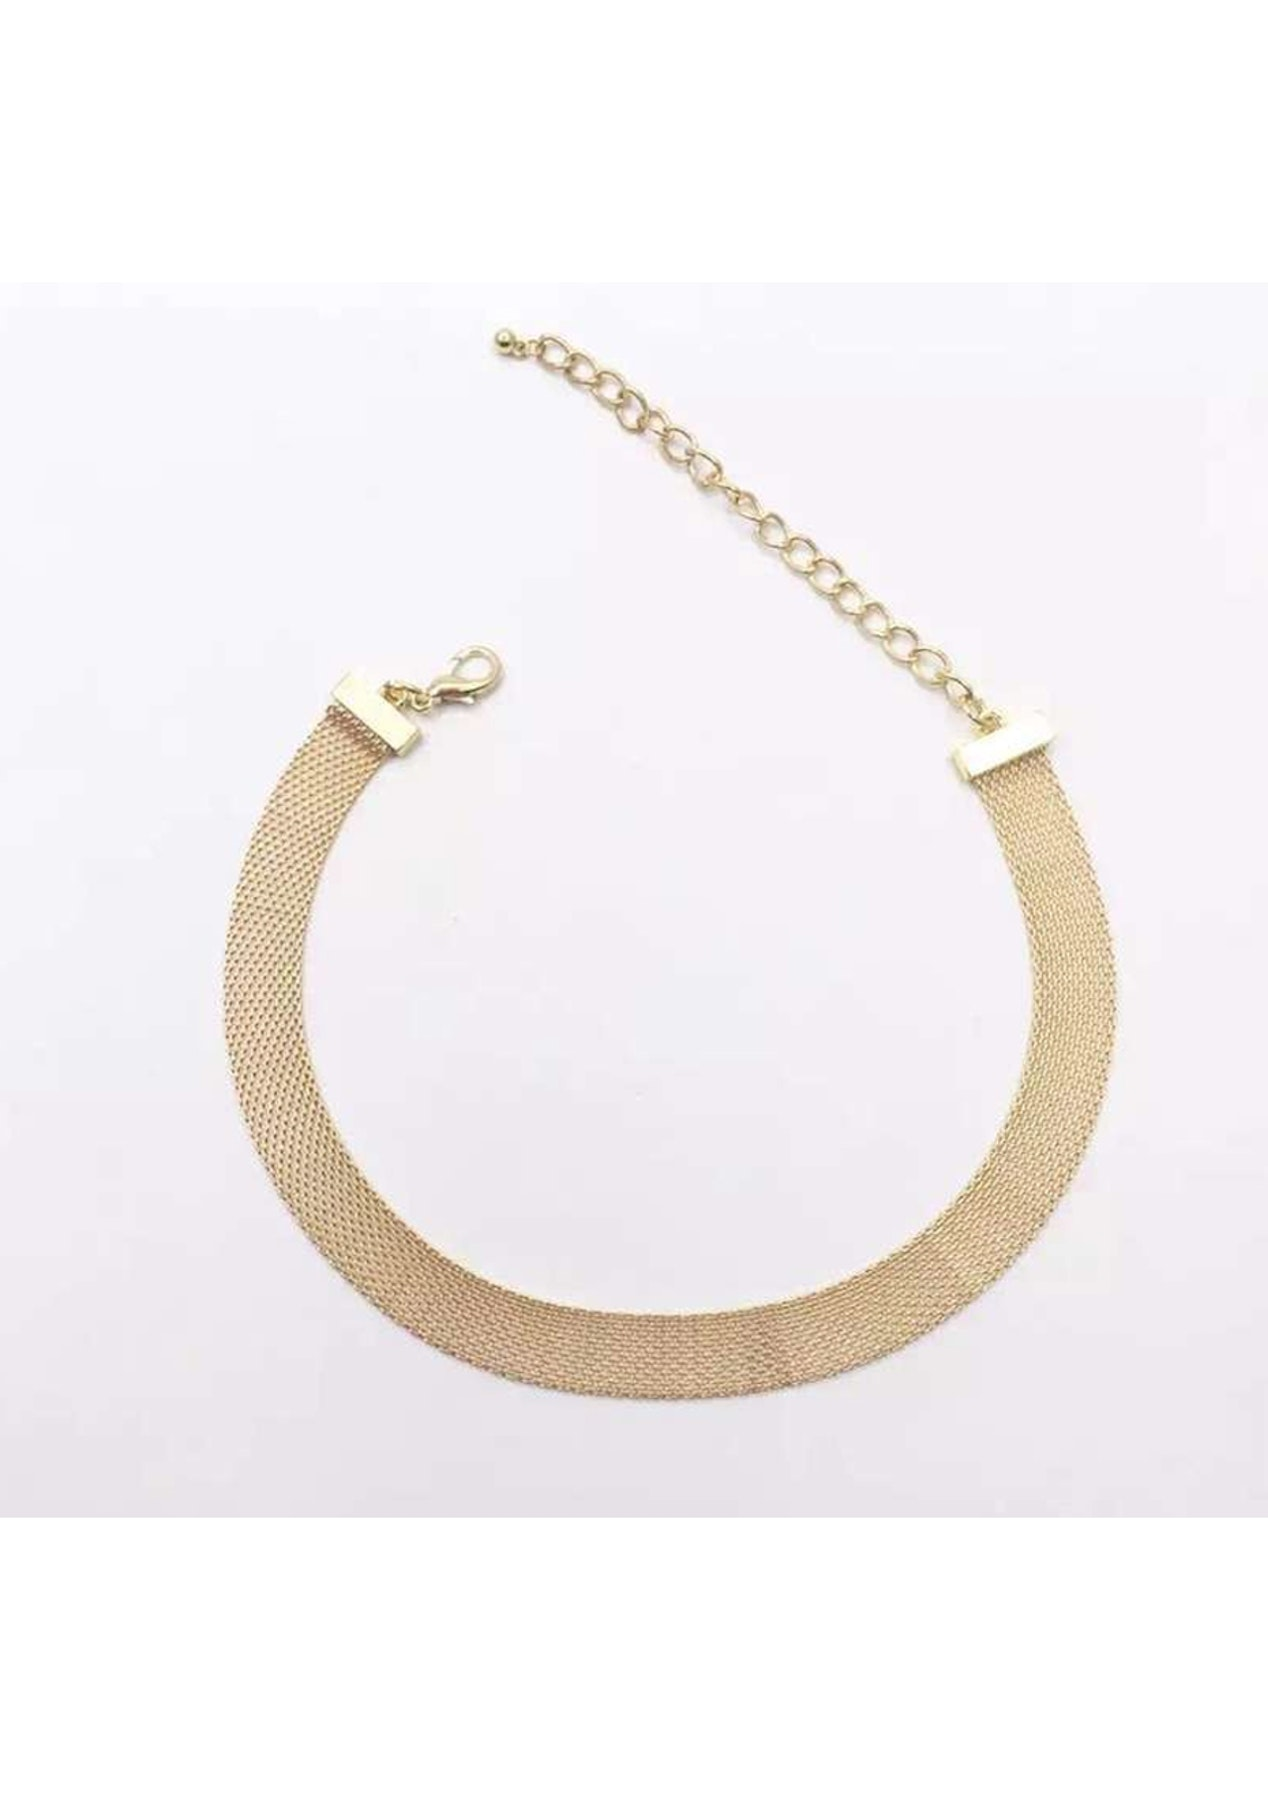 new v kate htm simple spade vp necklace shaken shopbop statement york stirred